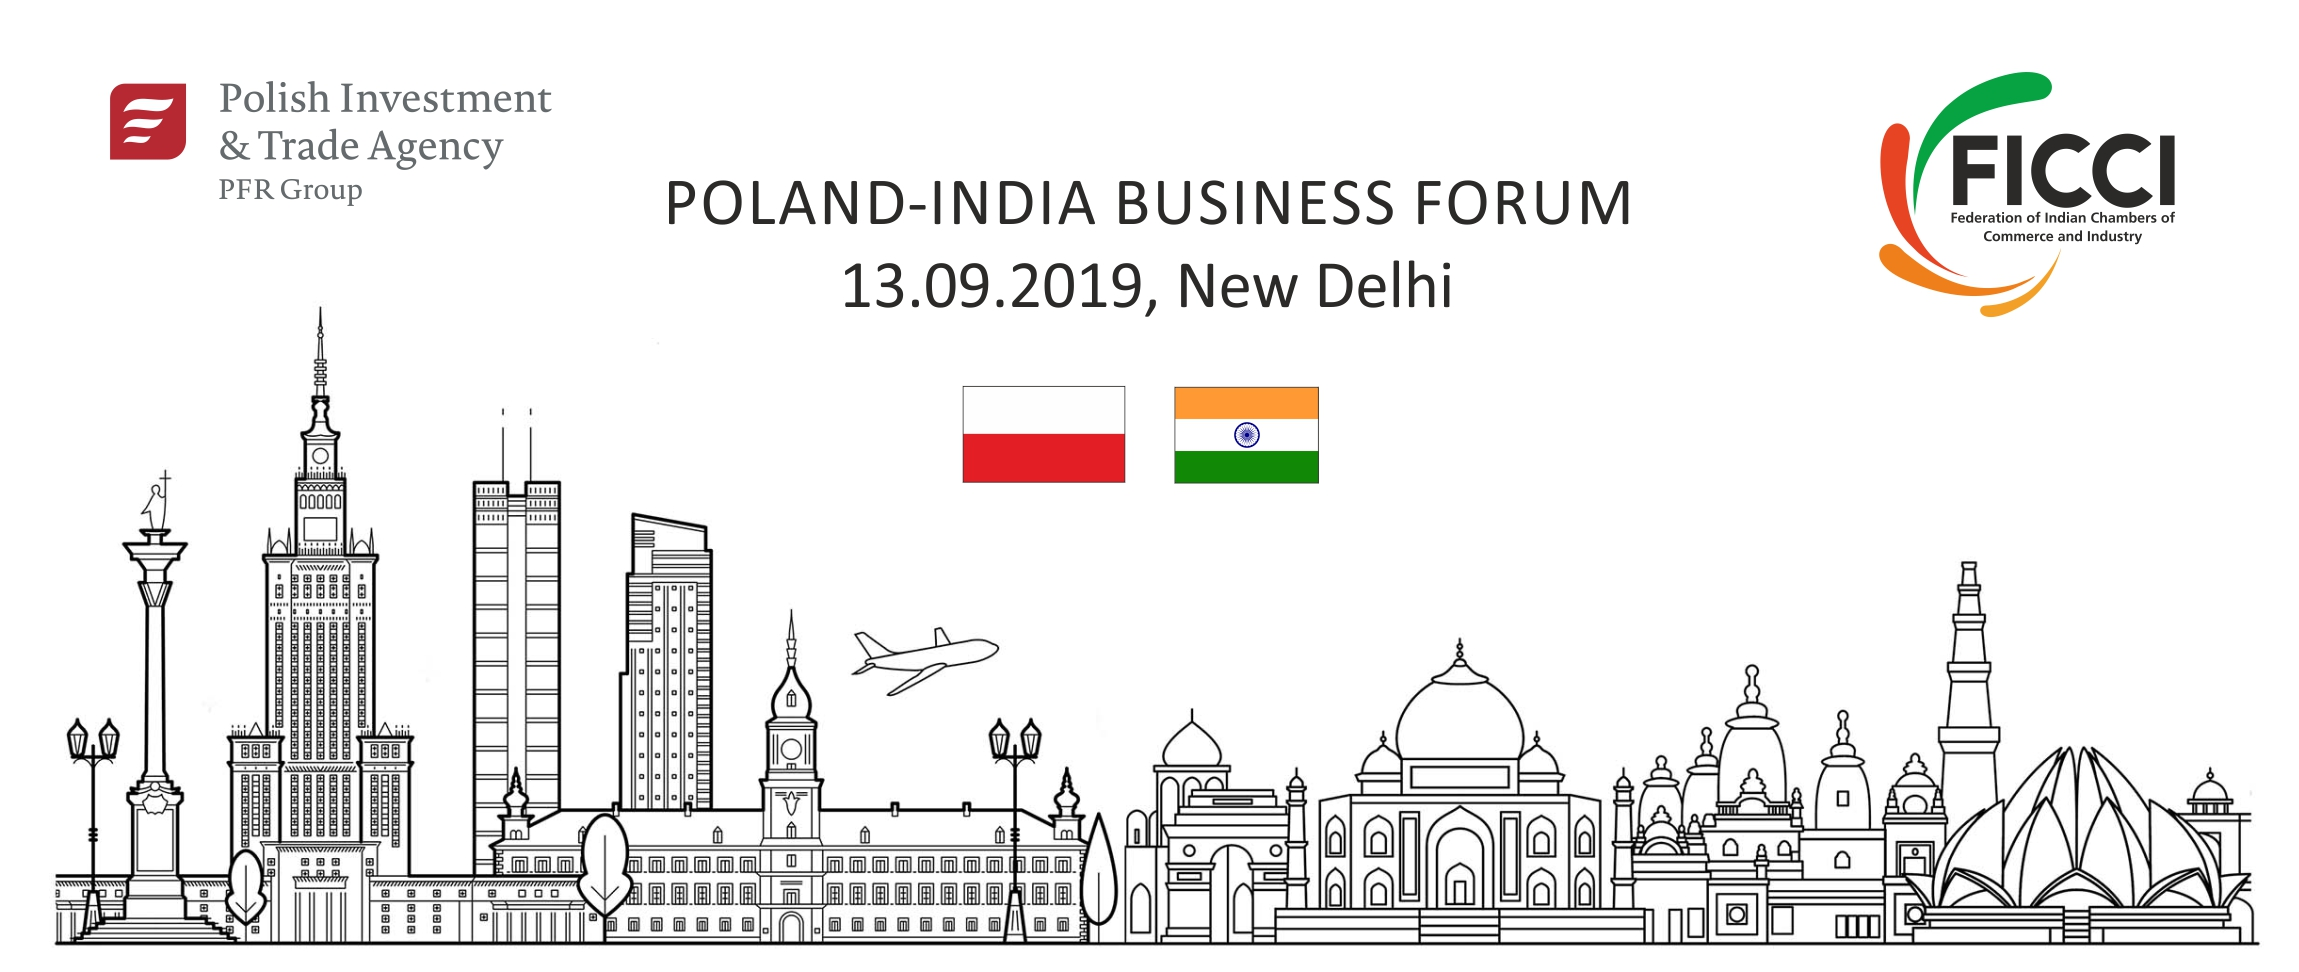 Business Forum Polska - Indie, New Delhi - PAiH